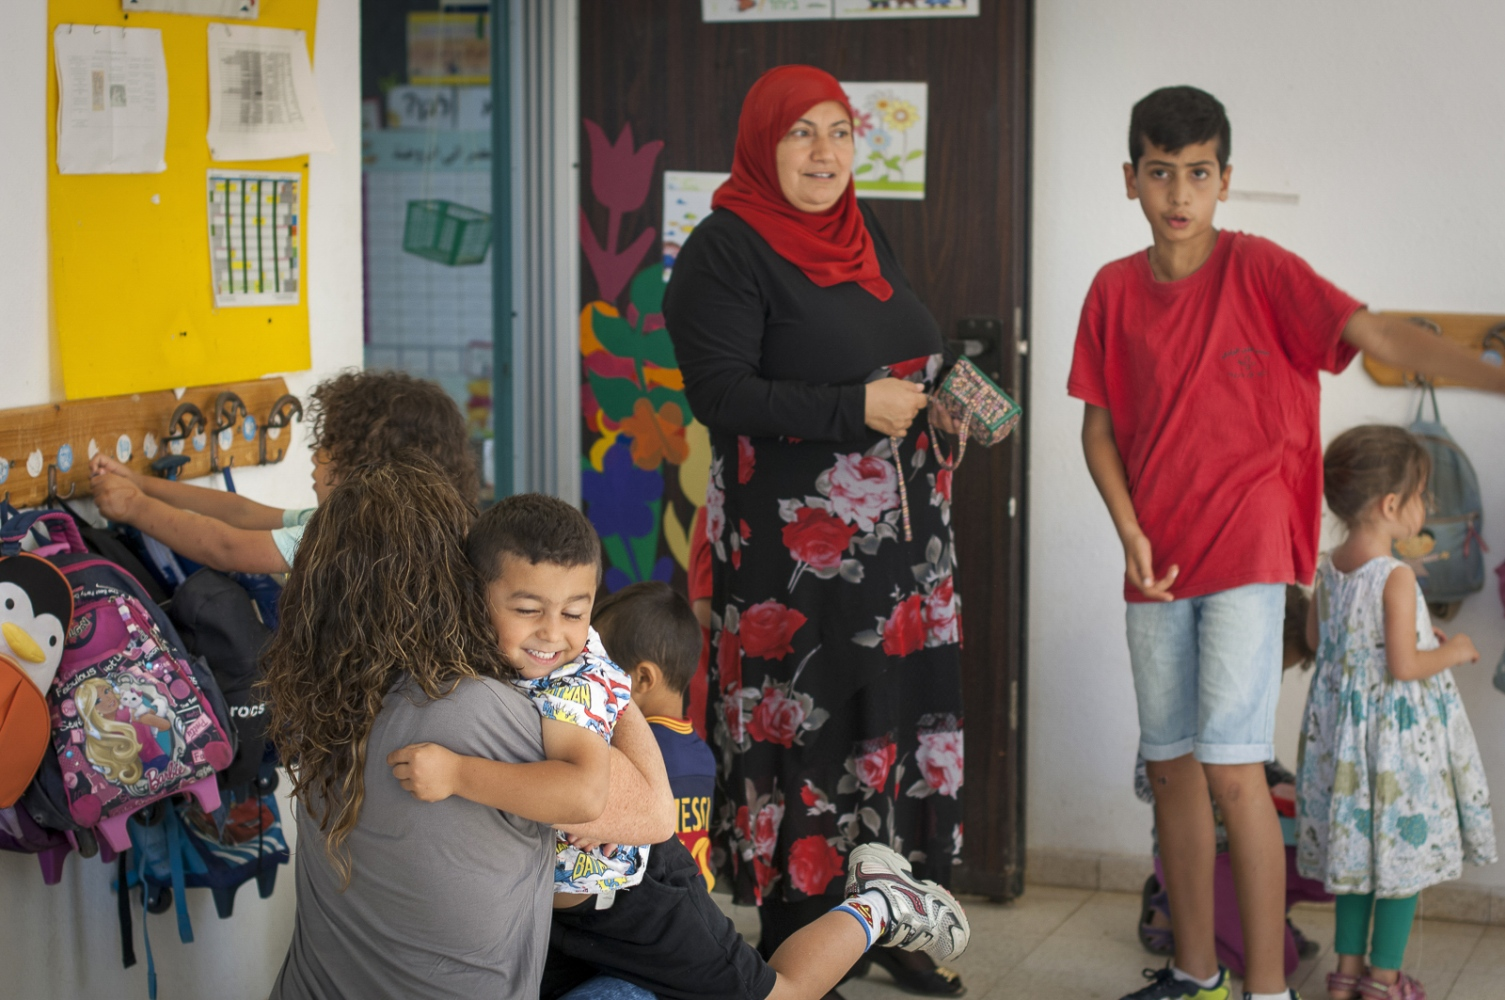 Kindergarden teacher Daisy Yaakov gets a hug from Bashar Abu Fane. Her co-teacher Layati Kaboha is in the background. Wadi Ara, Hand in Hand School, Kafr Qara, Israel.